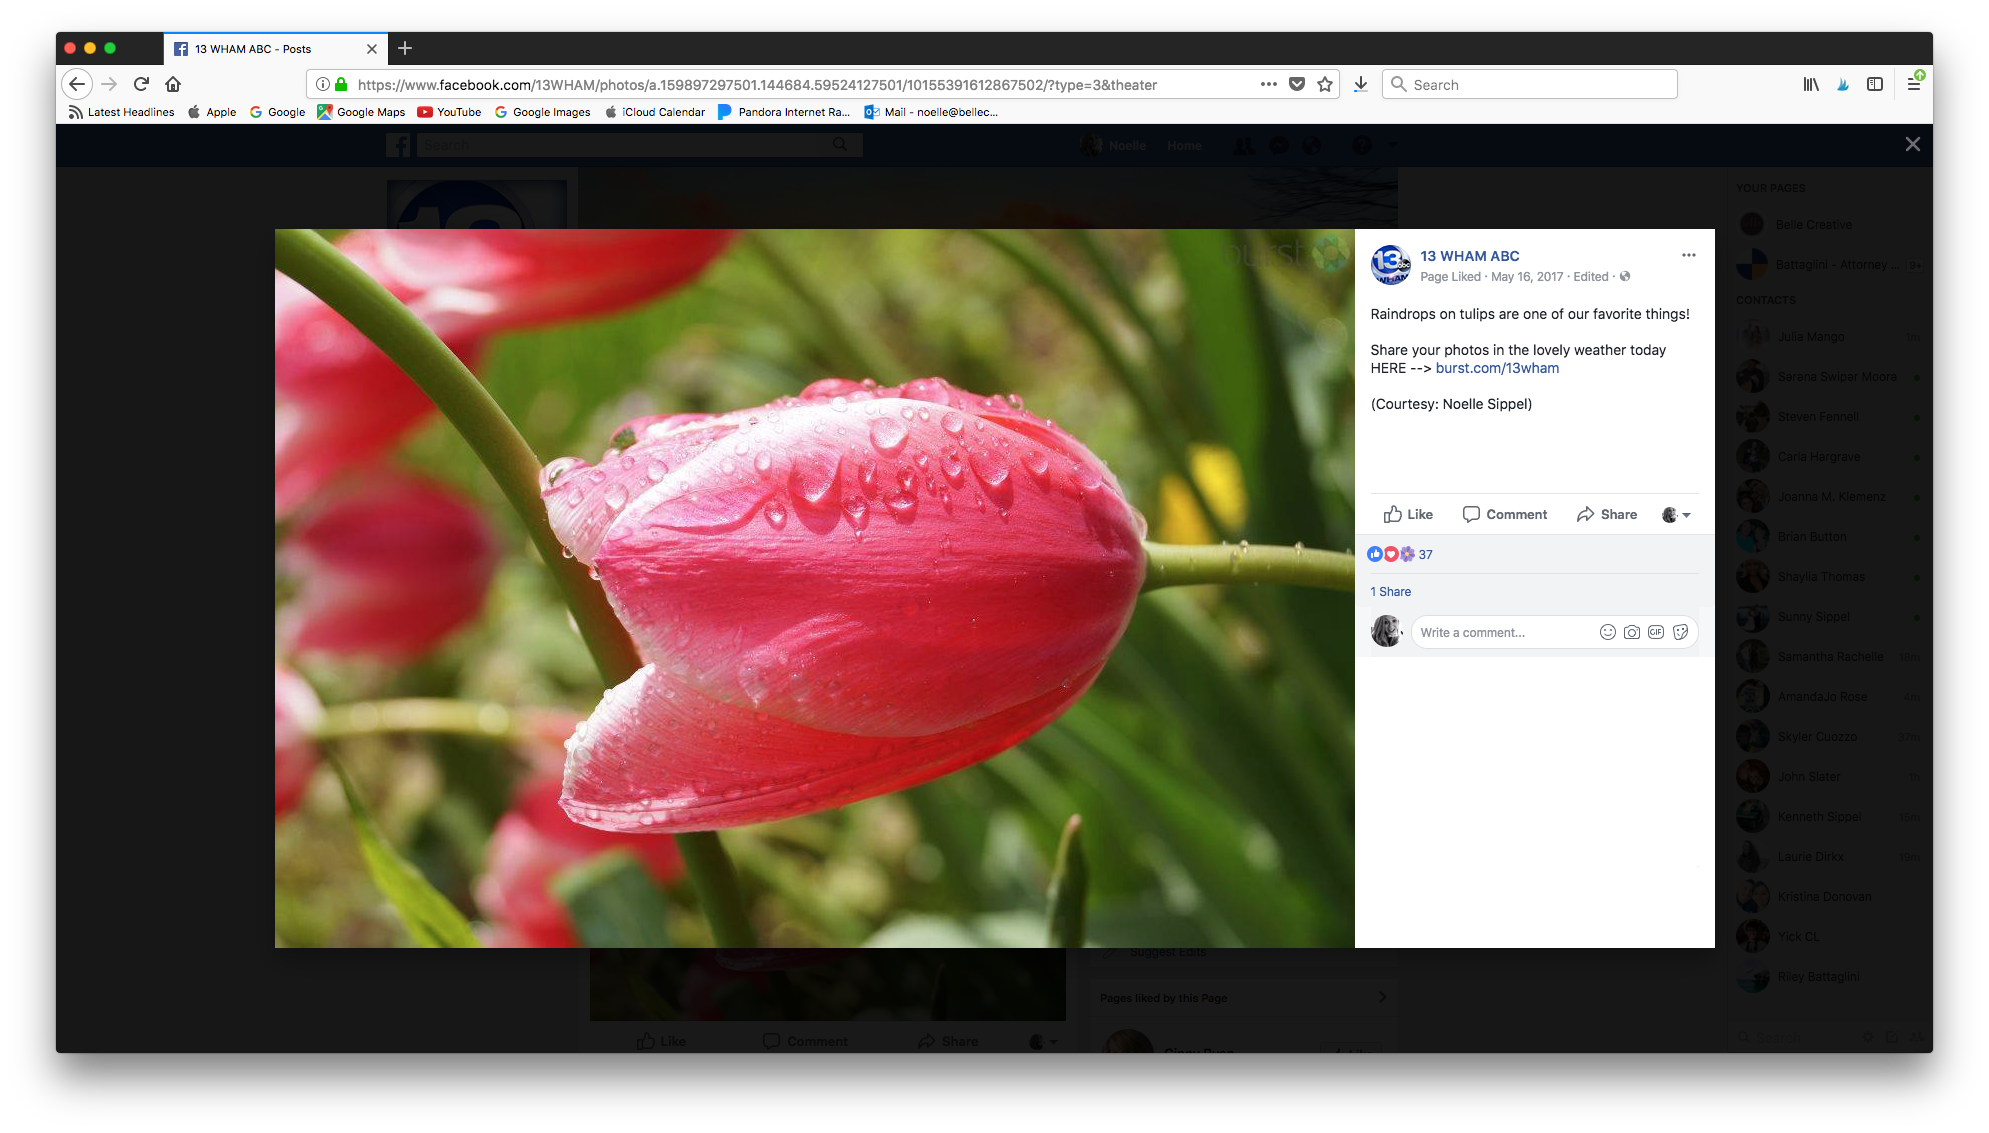 13 WHAM ABC - April showers bring May flowers! 13 WHAM ABC shared our photo of these rainy day May tulips on their Facebook page in May of 2017.